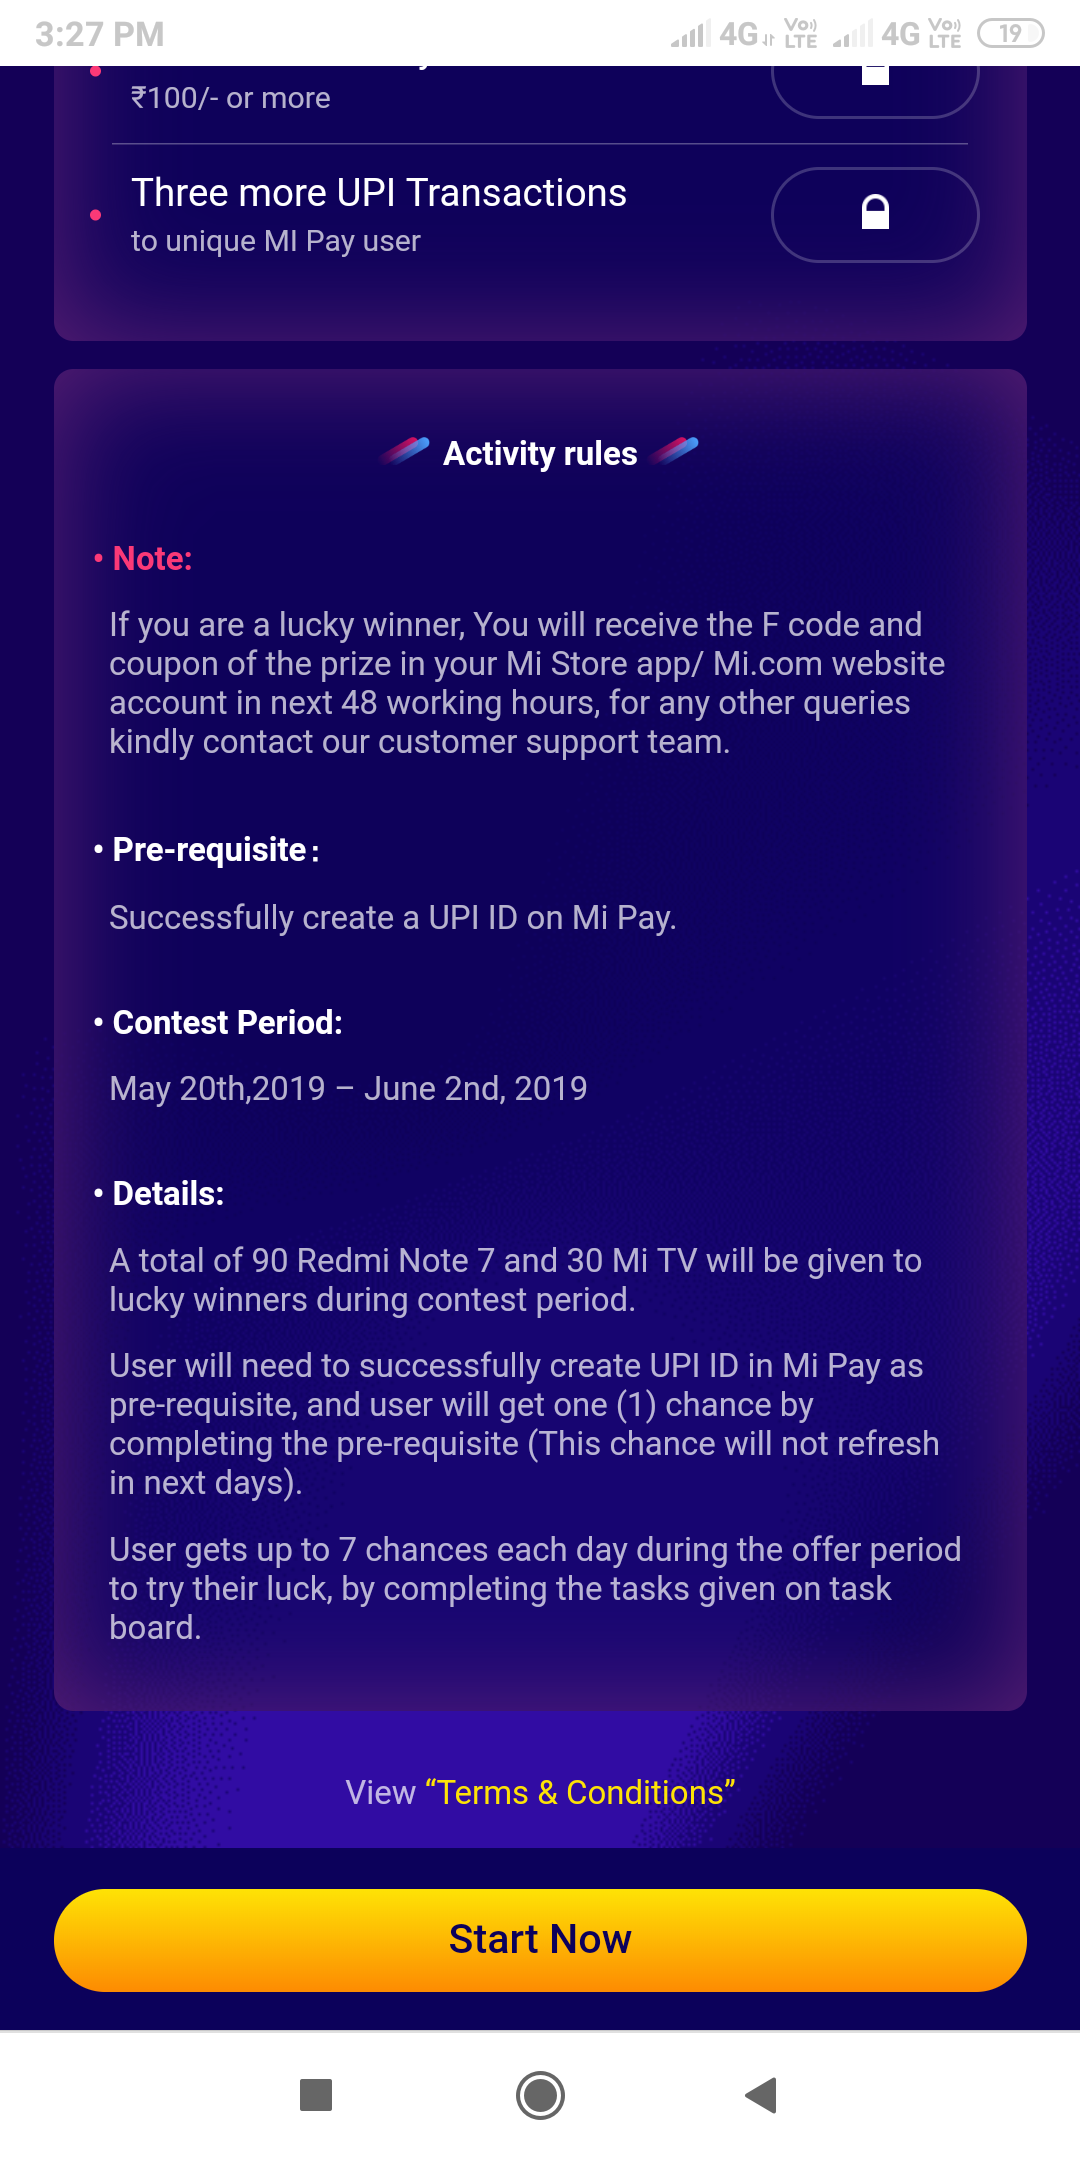 Mi Pay Offer : Create UPI ID & Get a Chance to Win Redmi